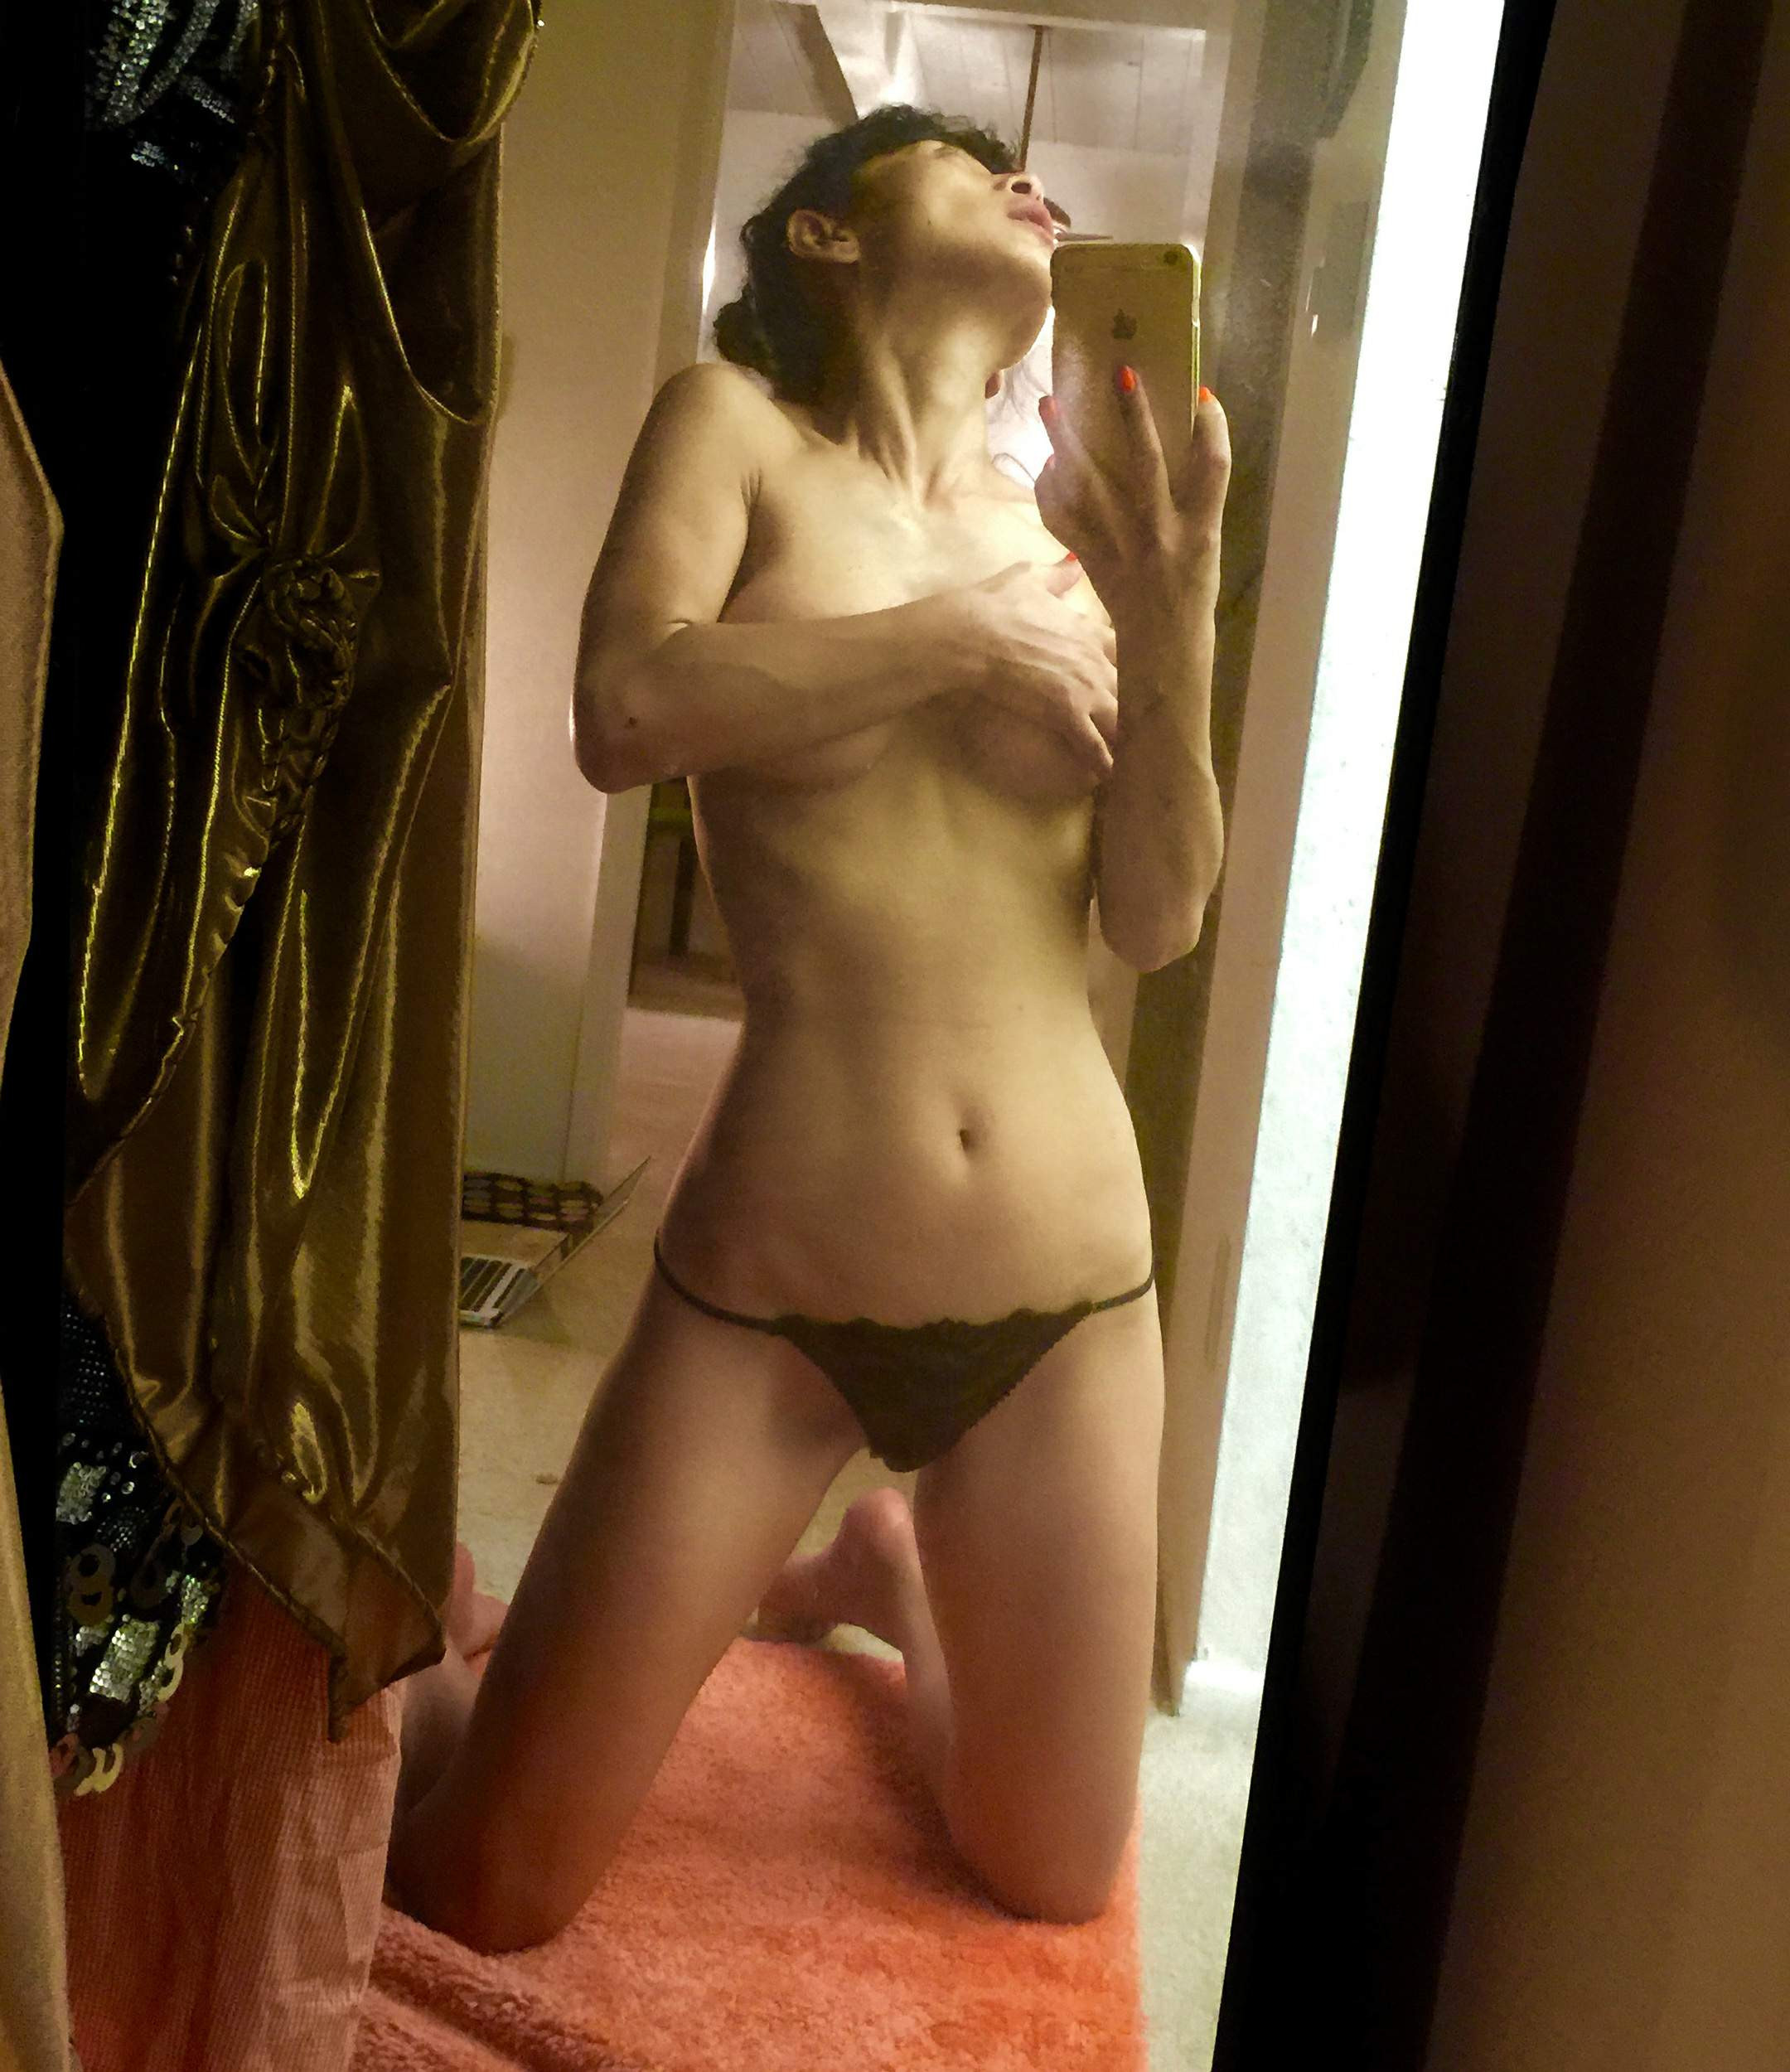 Bai Ling Naked 6 TheFappening.nu